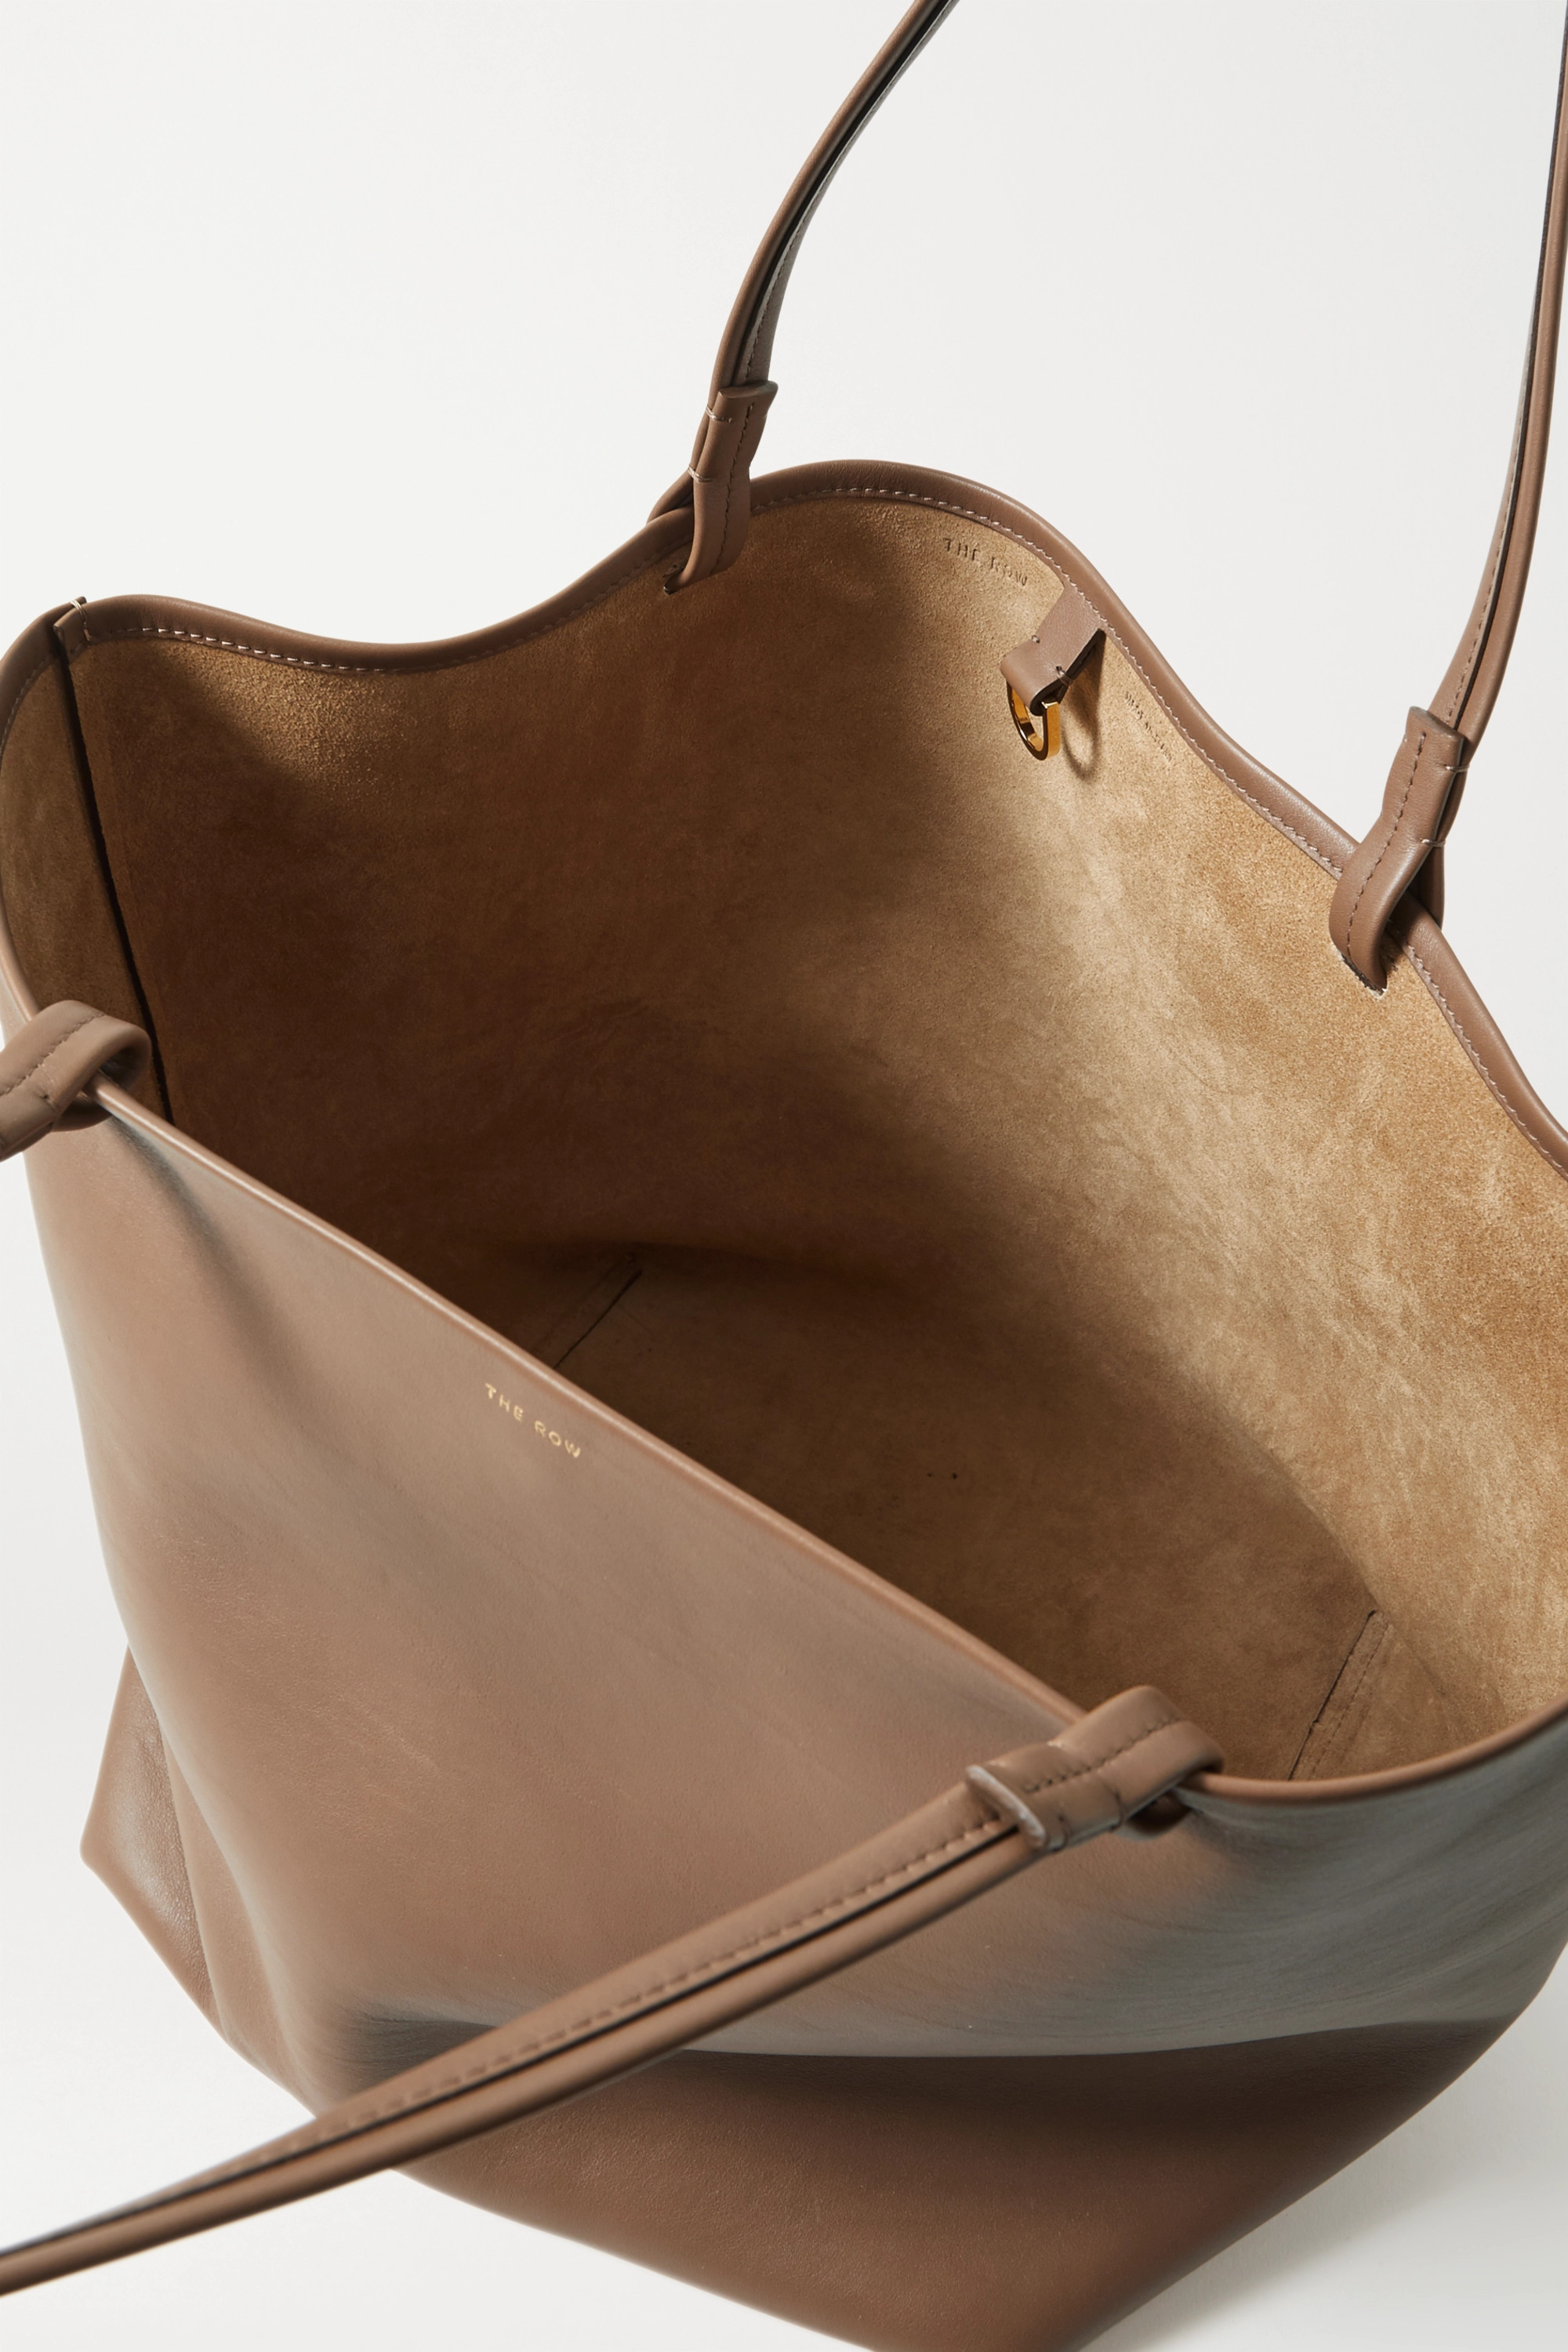 The Row Park 3 medium leather tote